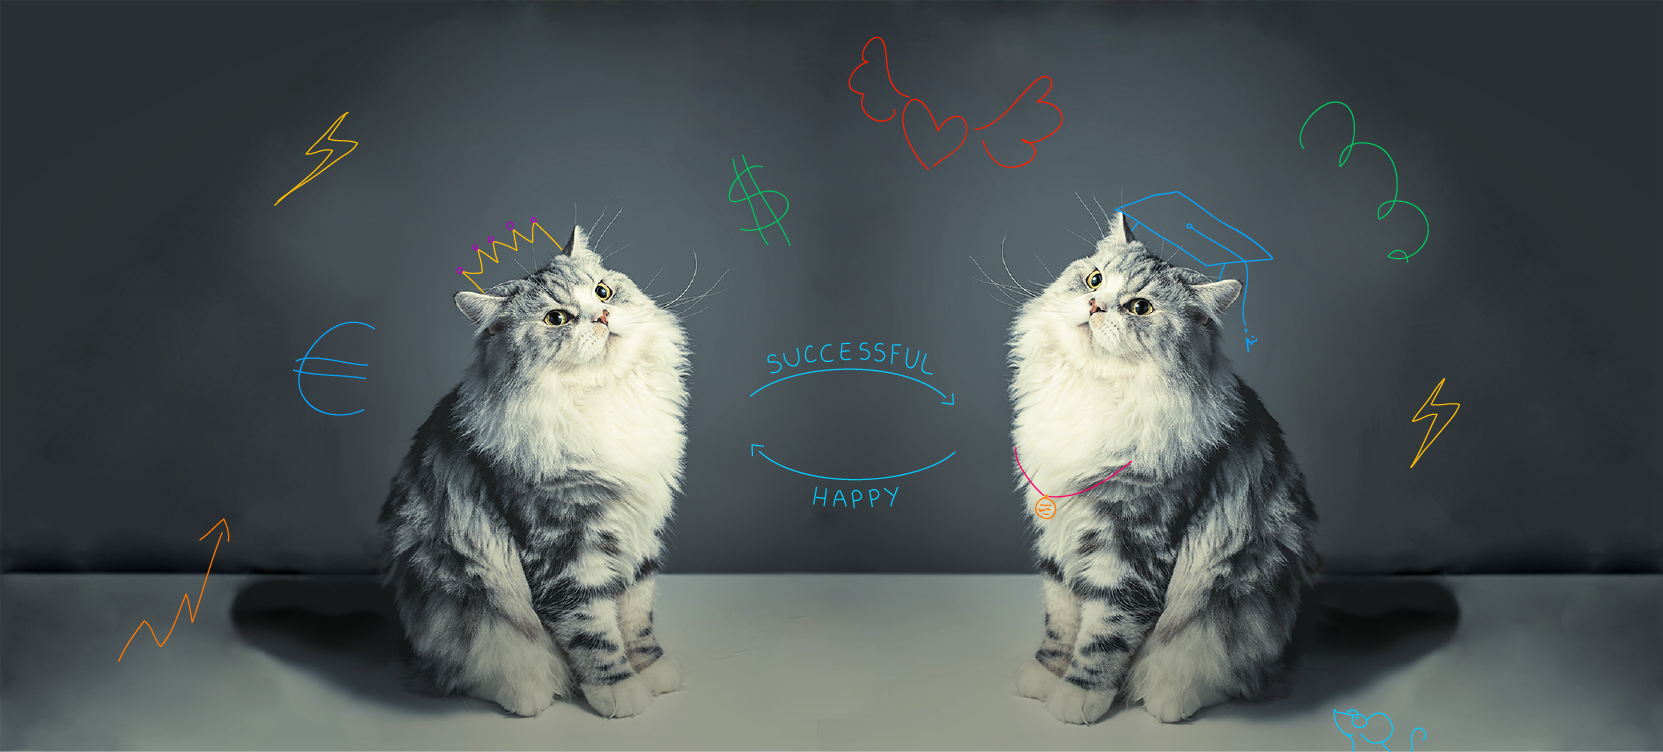 🐈 How to achieve success in life